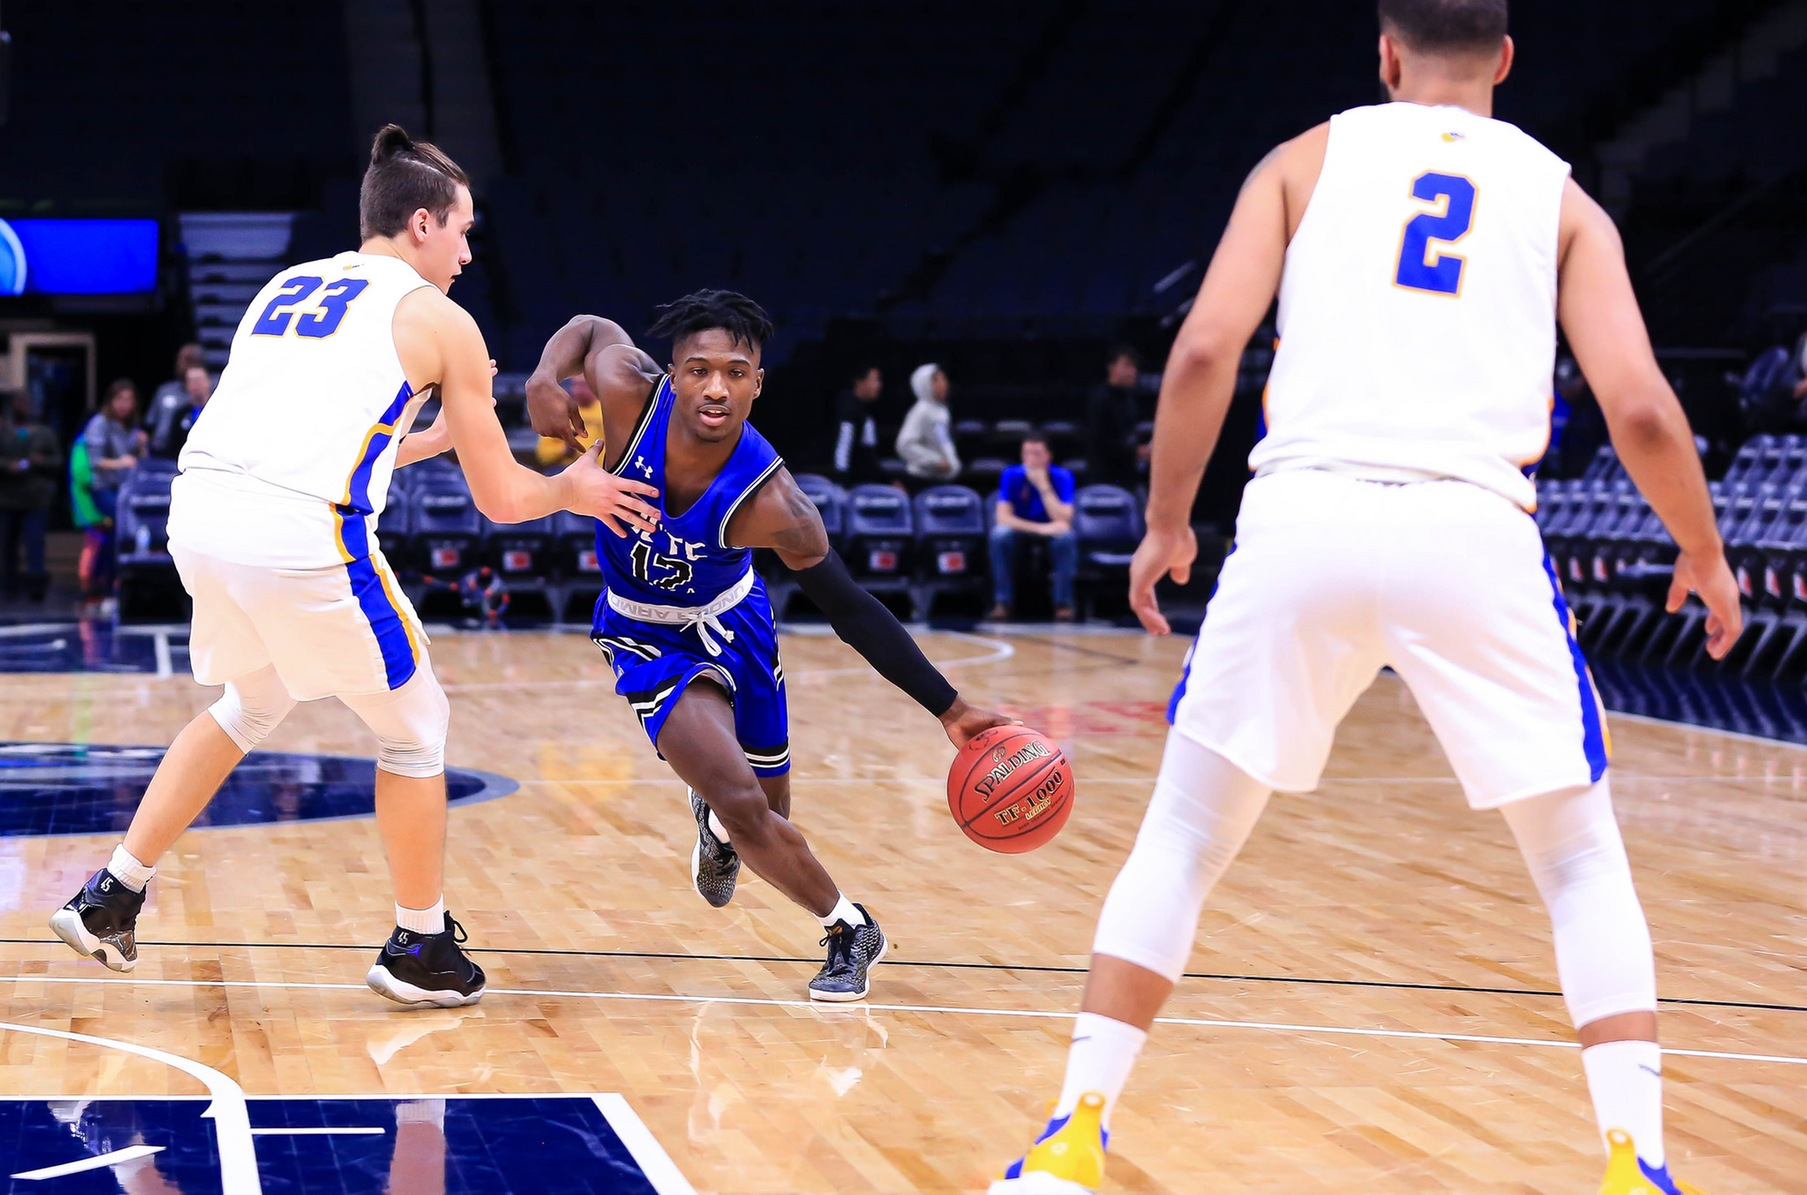 DCTC Falls to Bay College